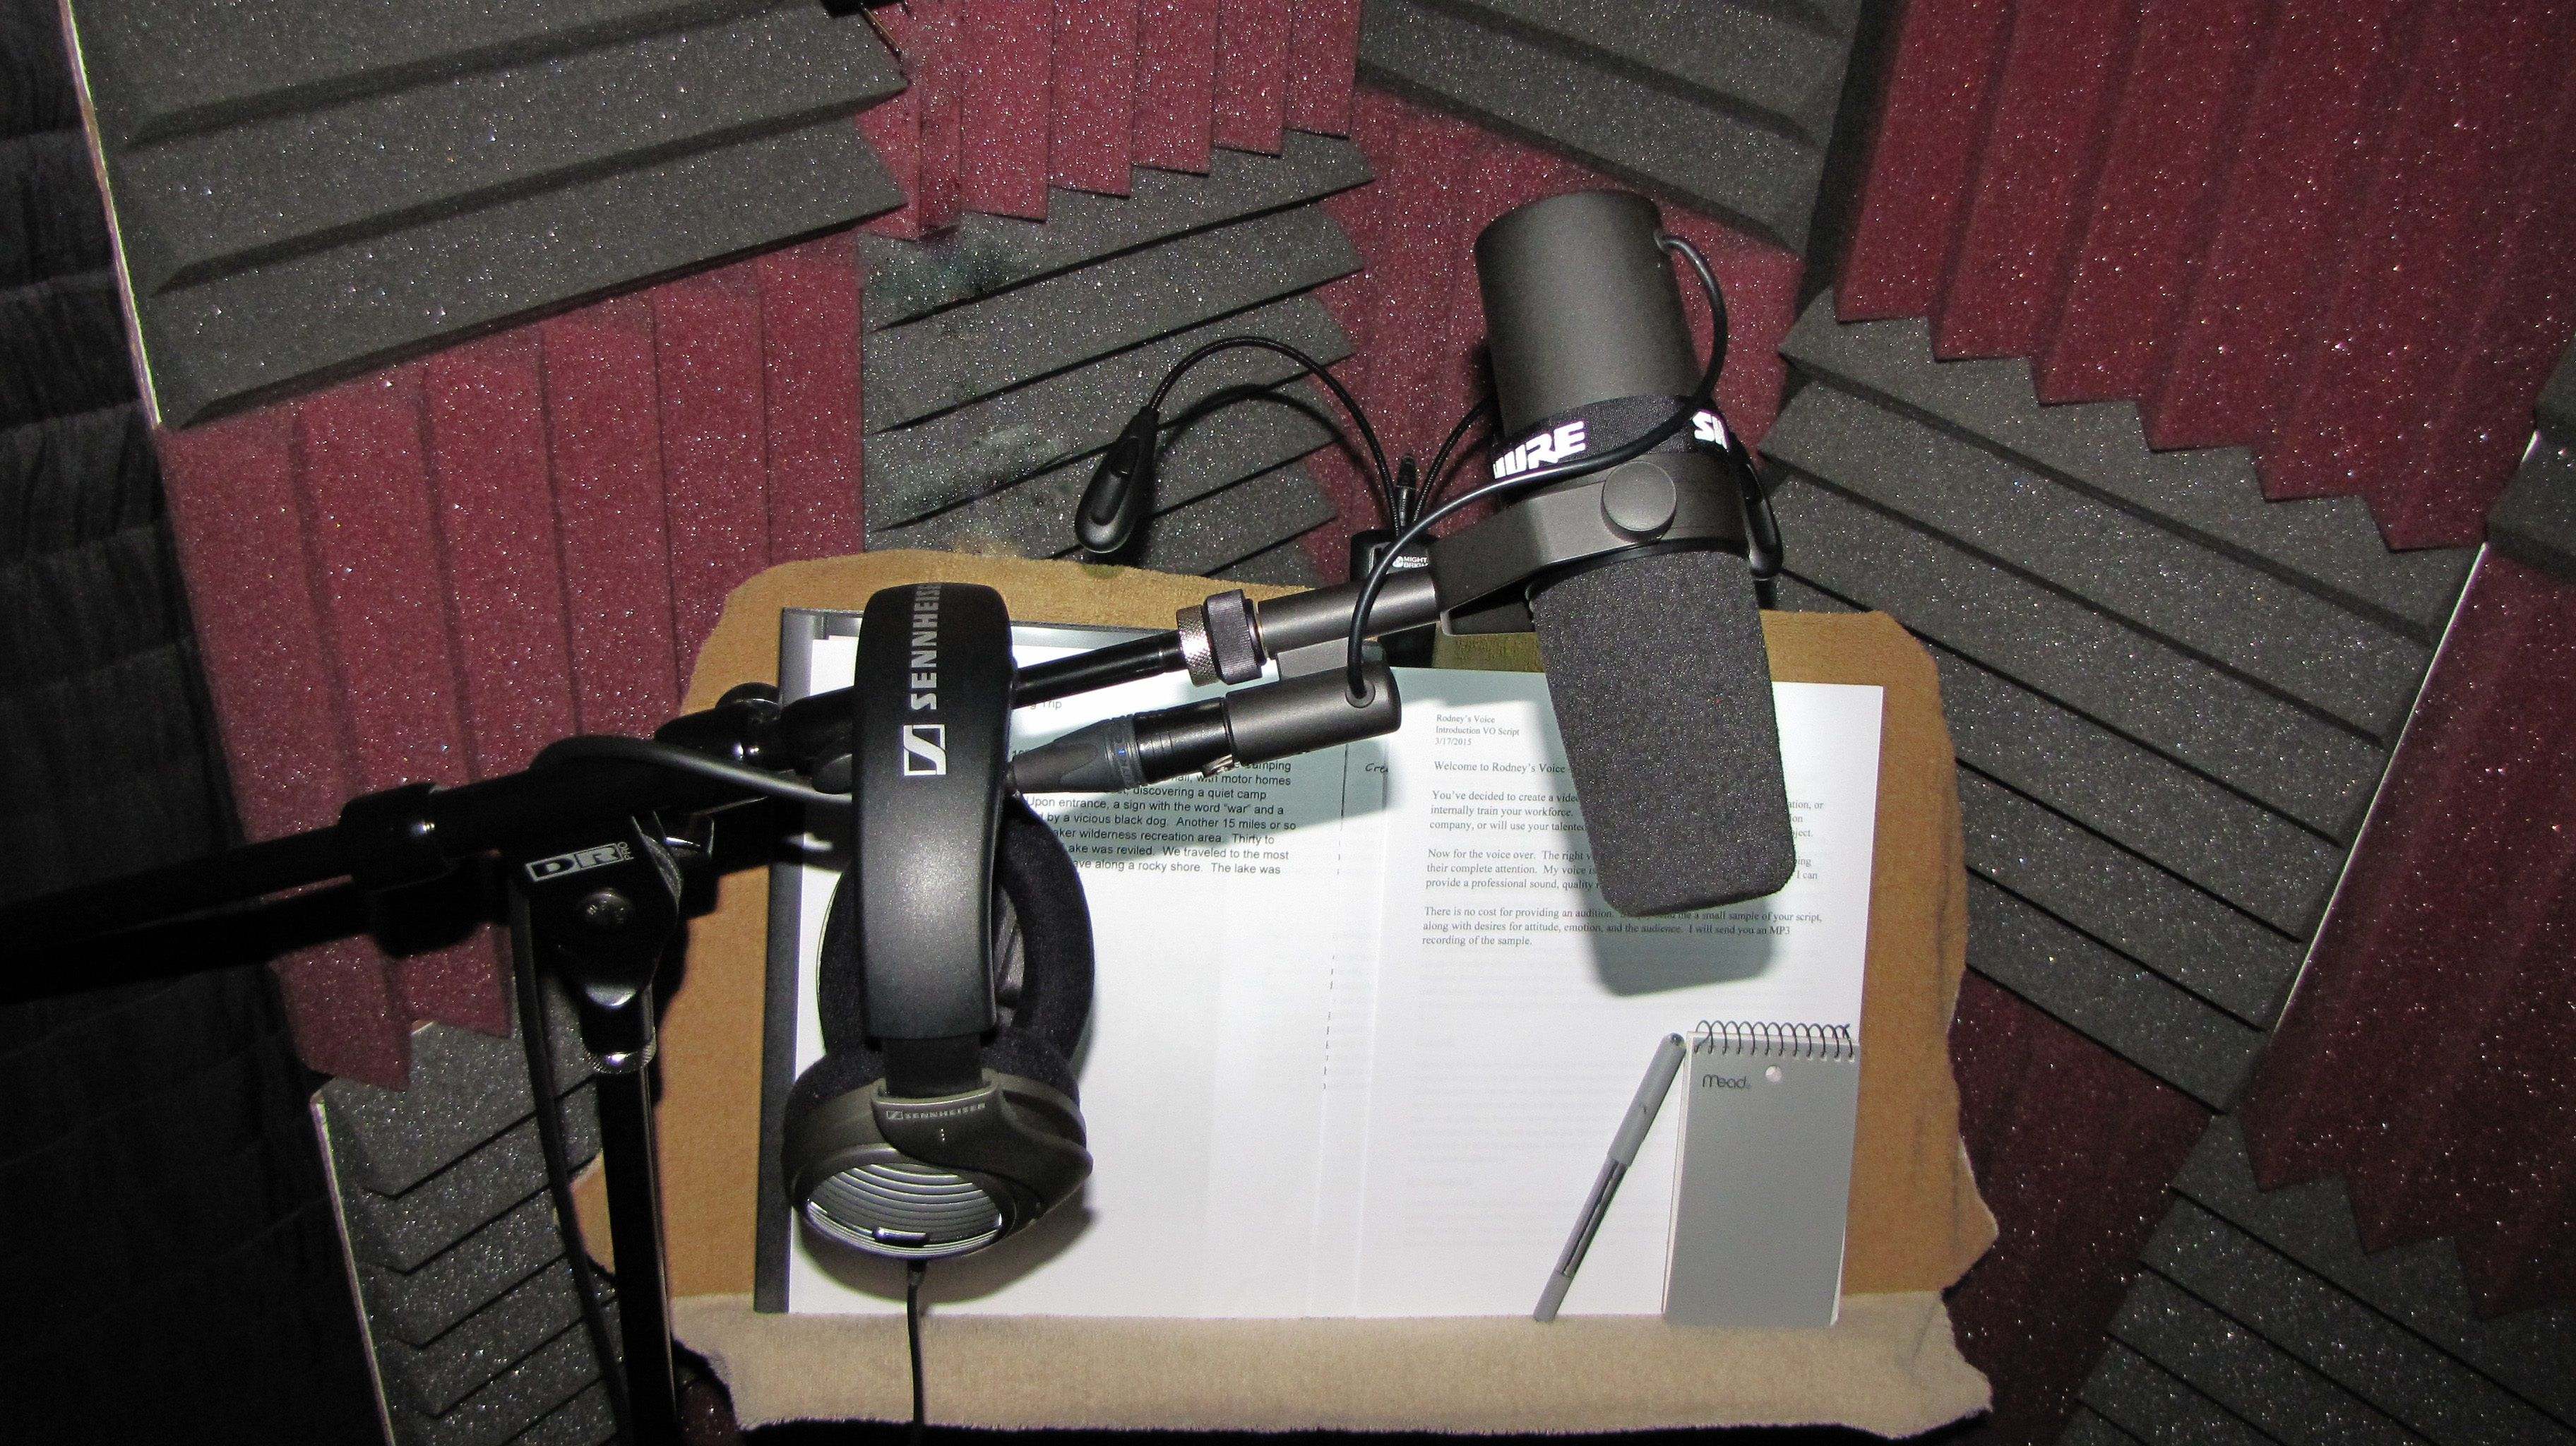 Talk shop and everything else with other Voice Over talents